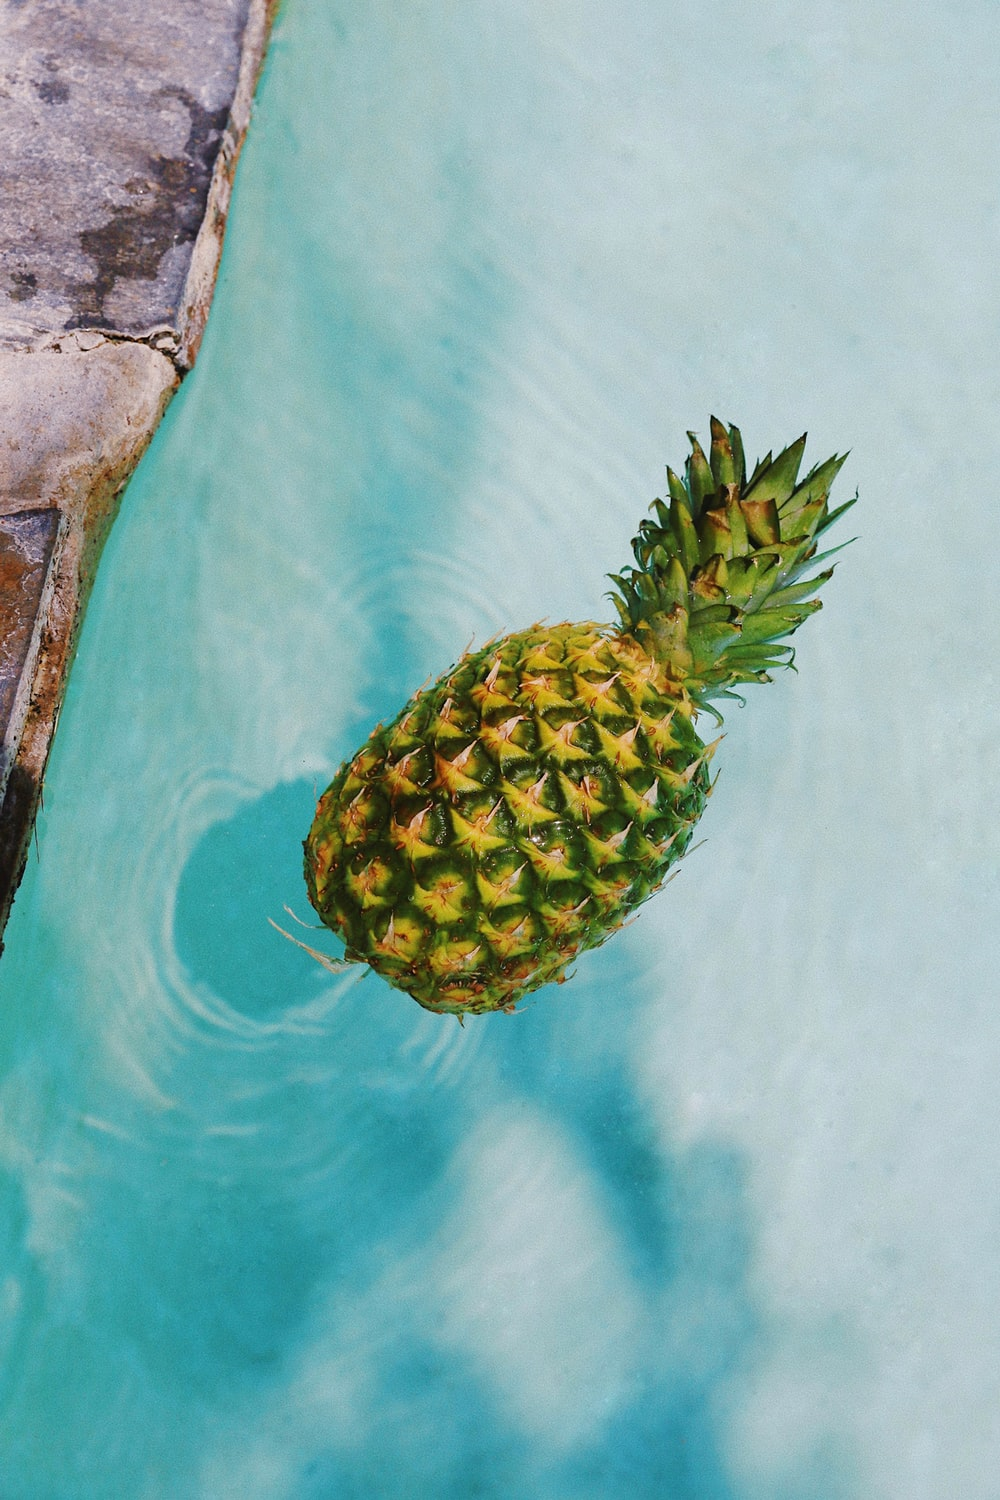 pineapple fruit on blue and white textile